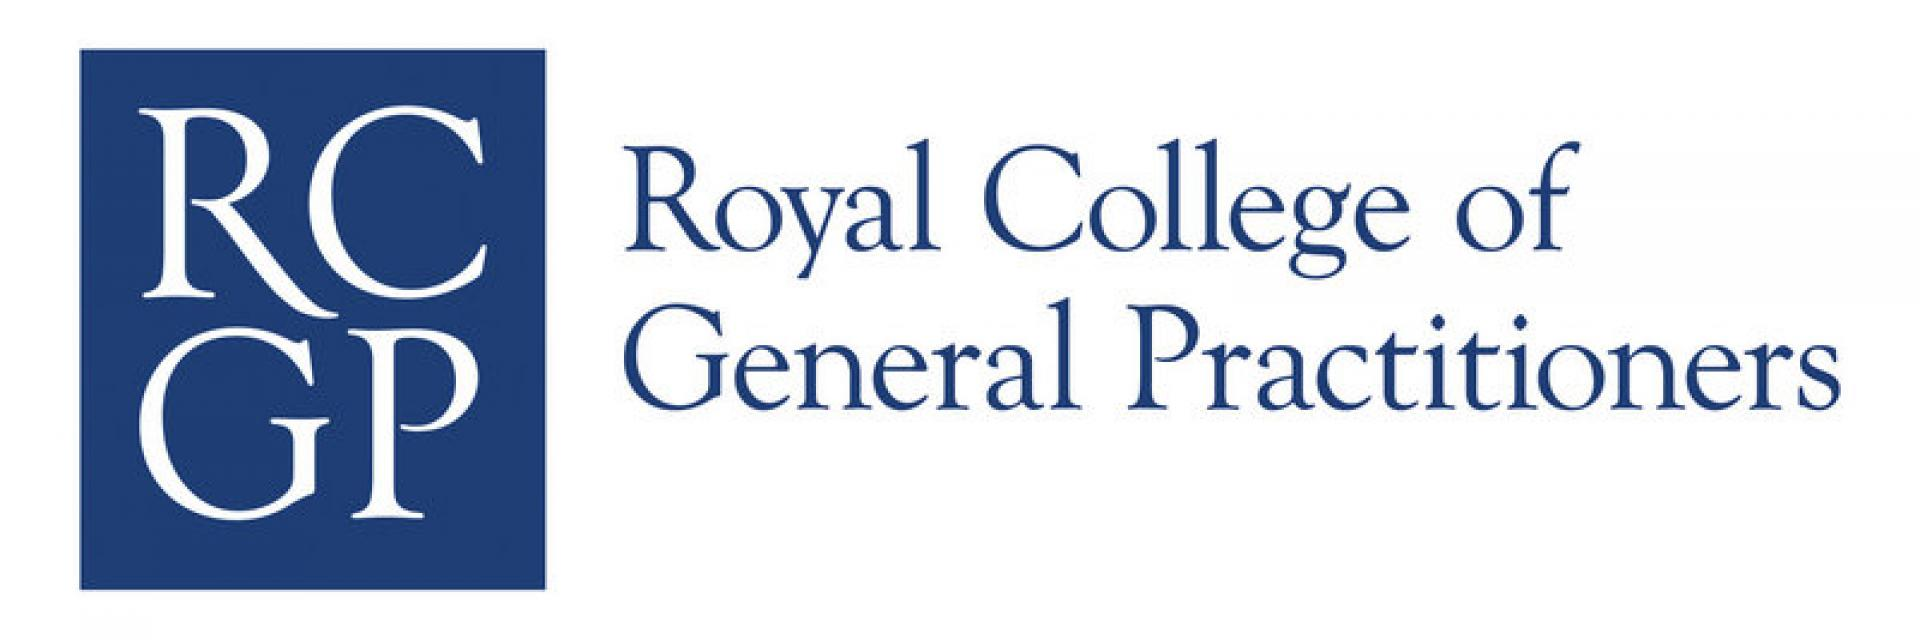 Team Building Royal College of General Practitioners